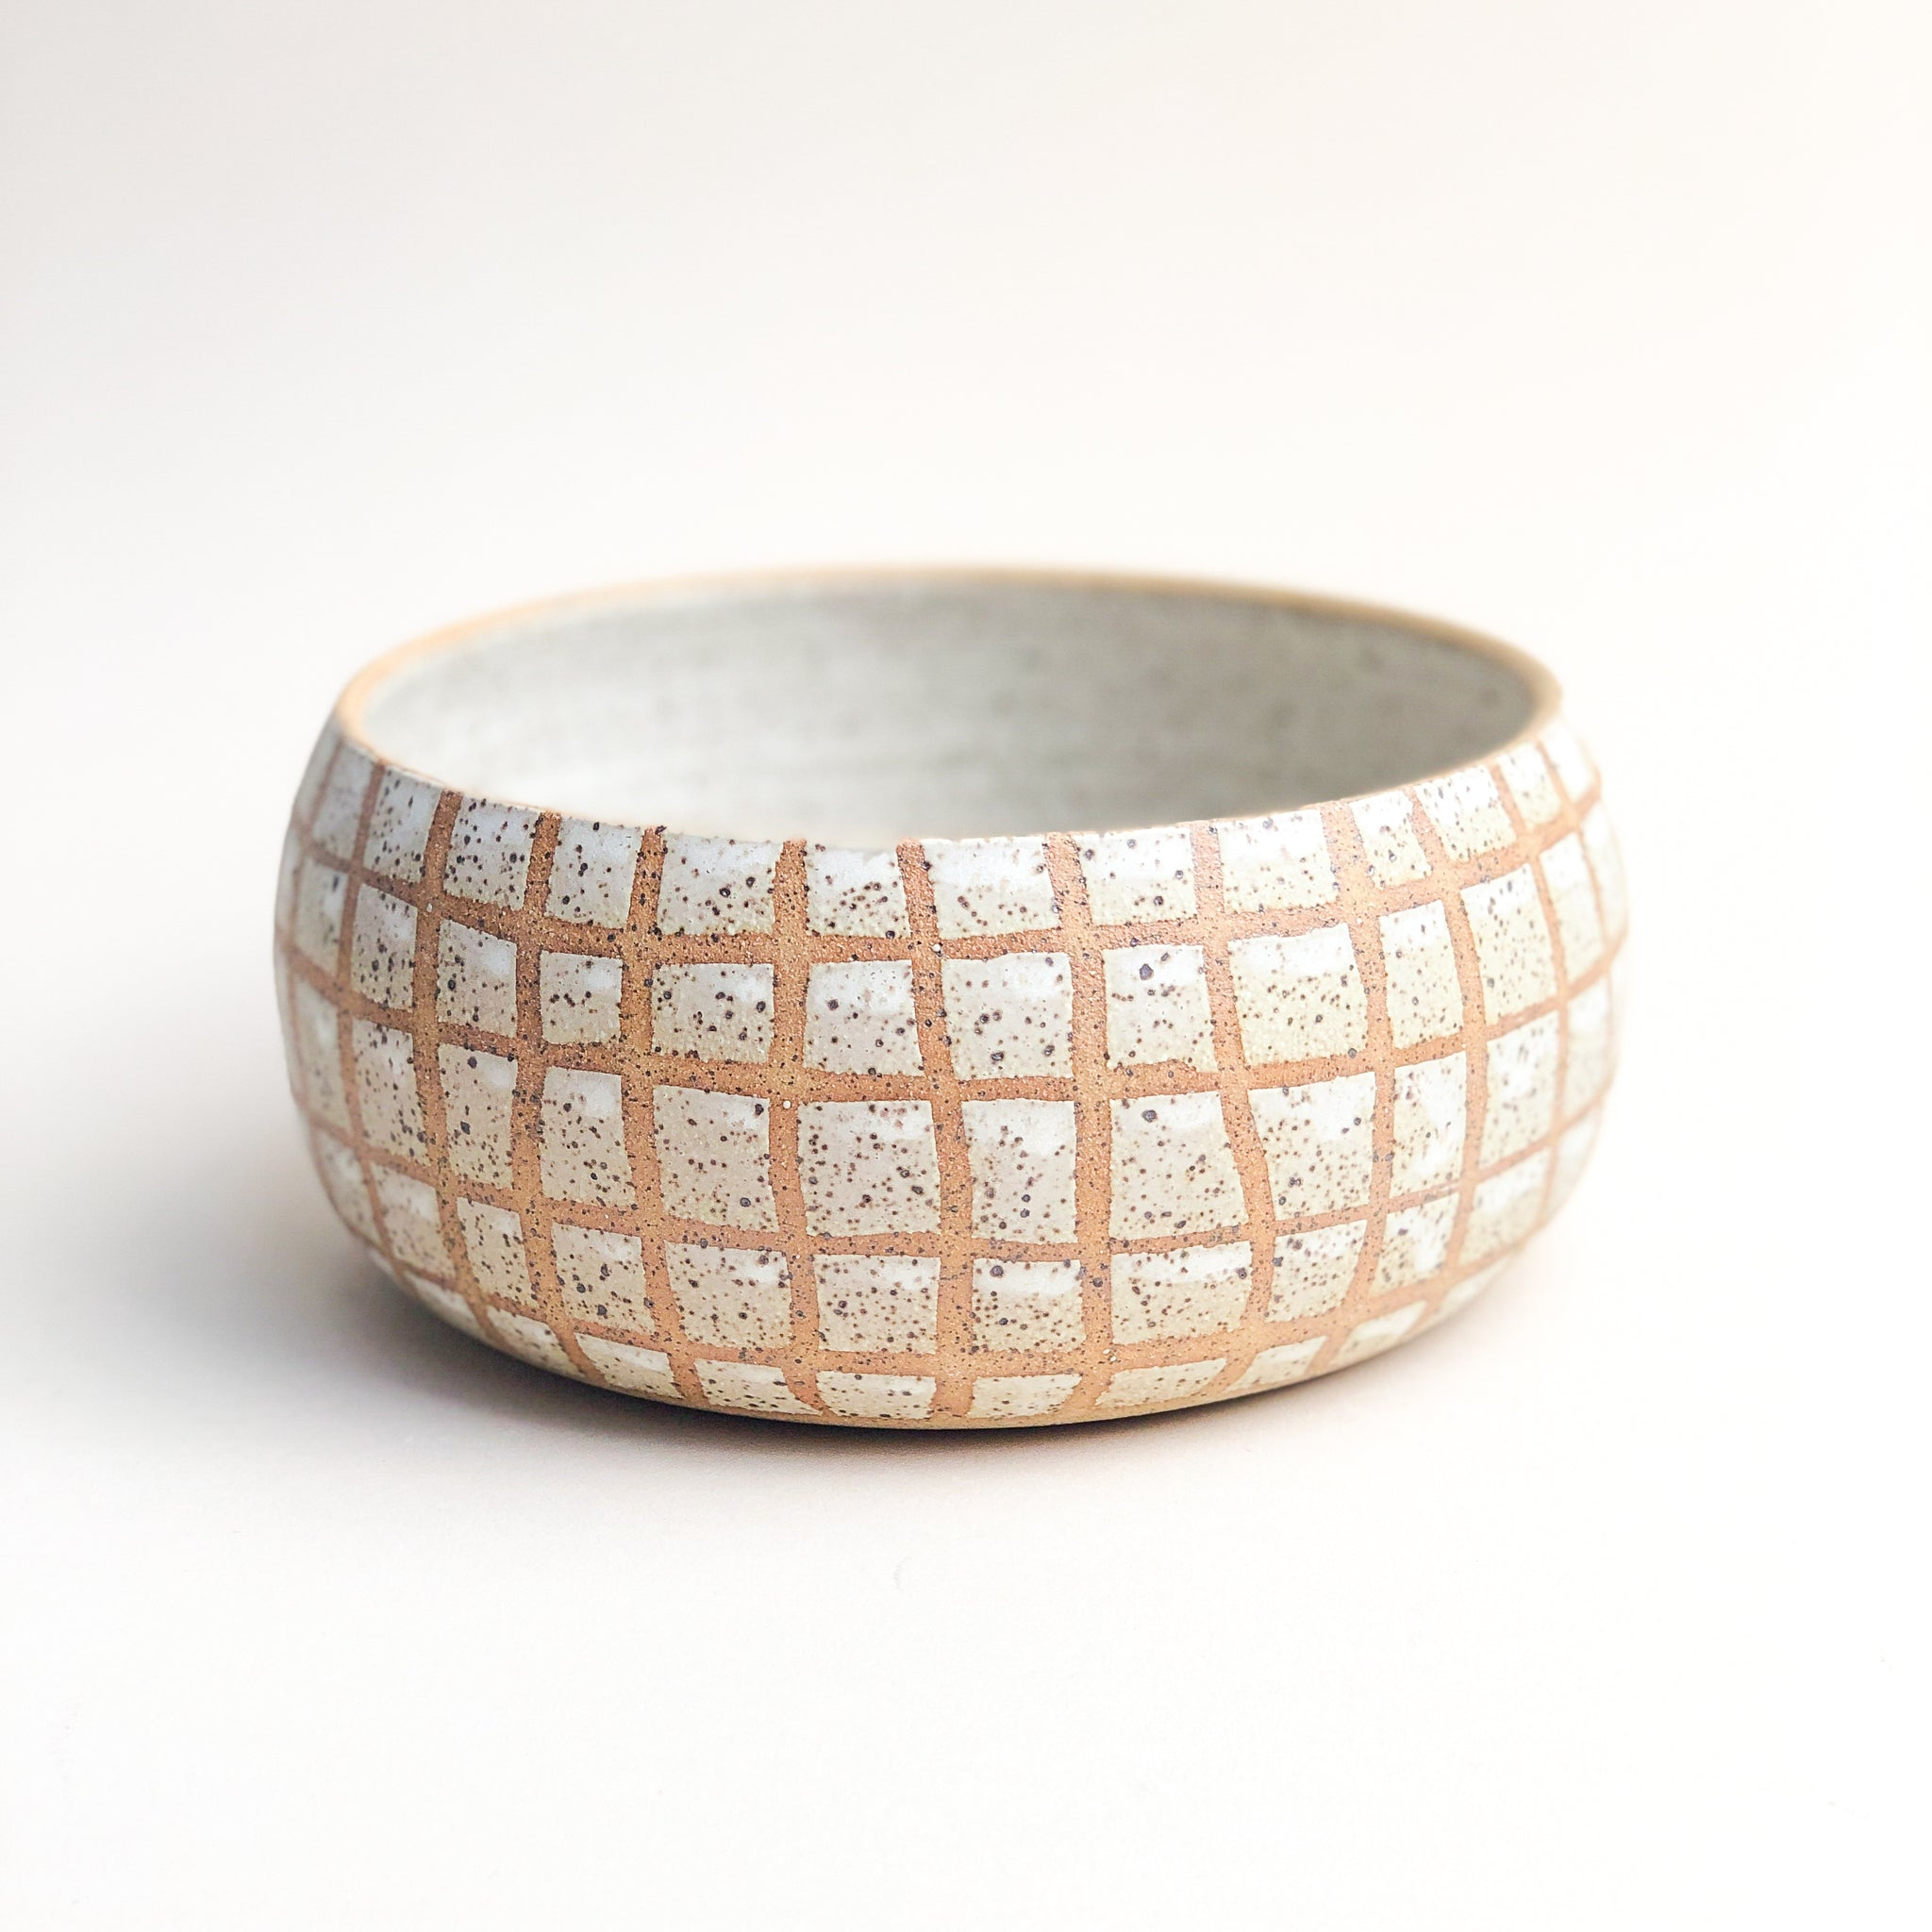 Serving Bowl // Woven